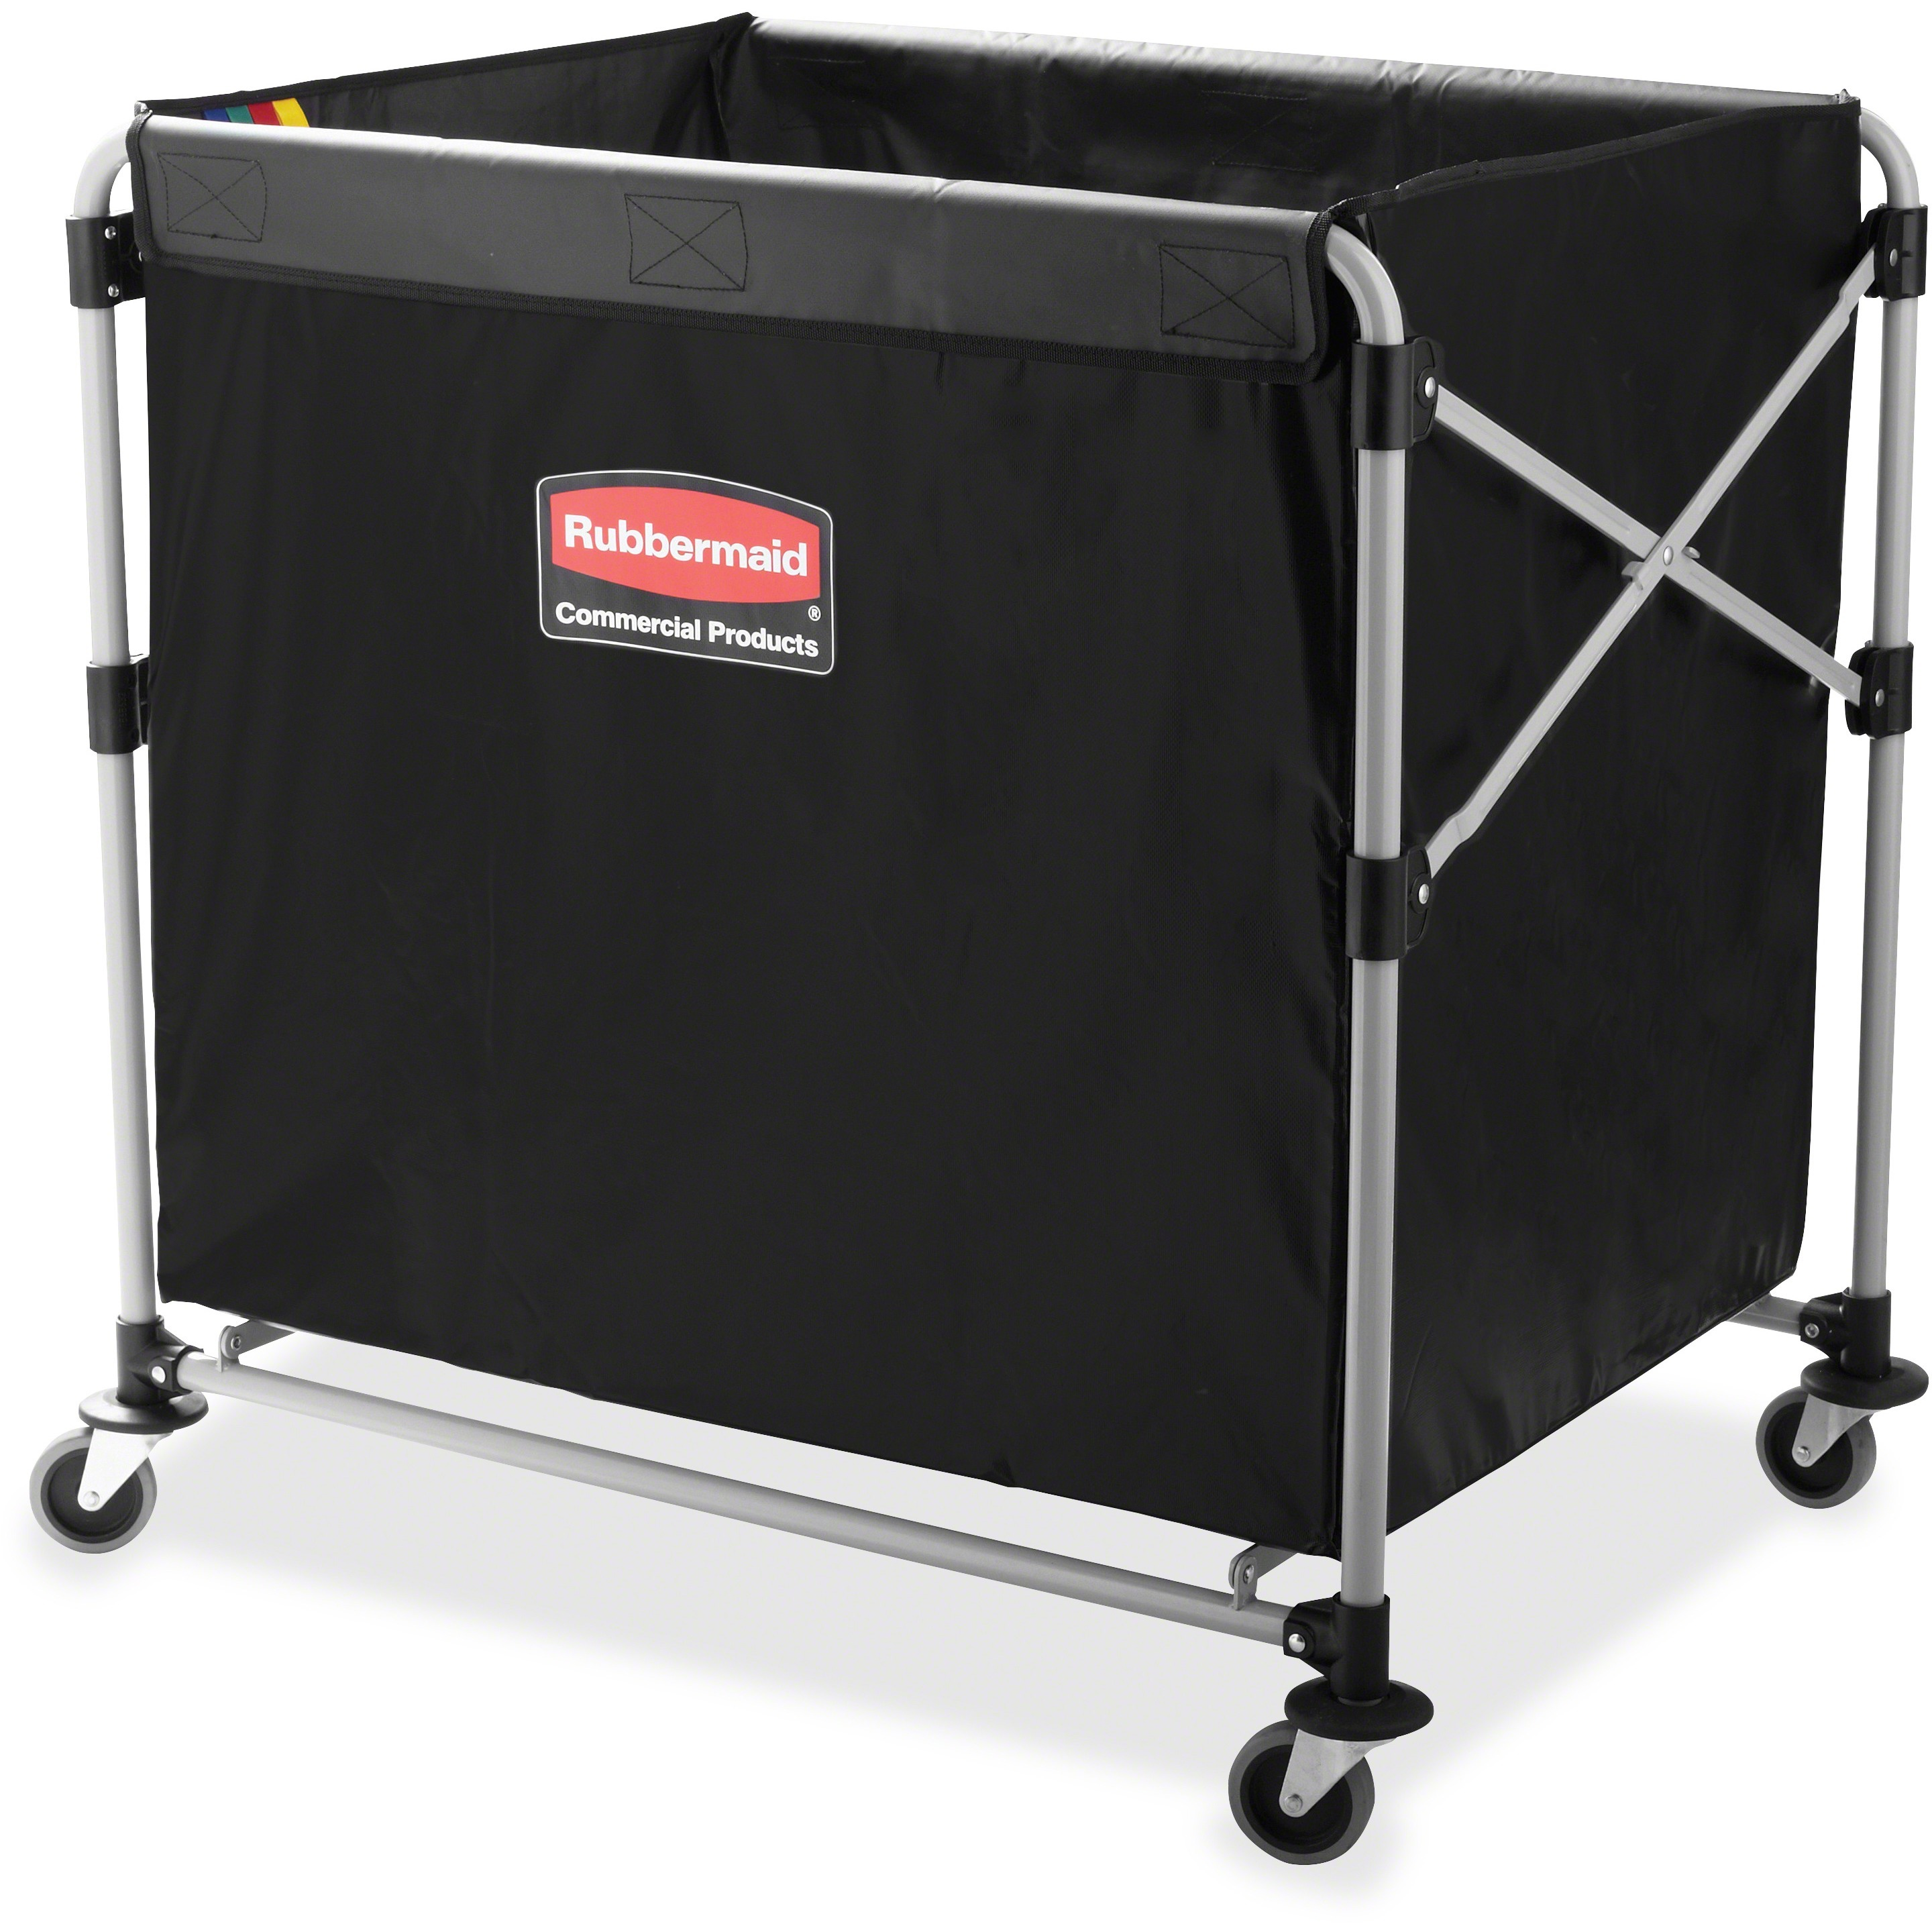 Rubbermaid Commercial, RCP1881750, 8-Bushel Collapsible X-Cart, 1 Each, Black